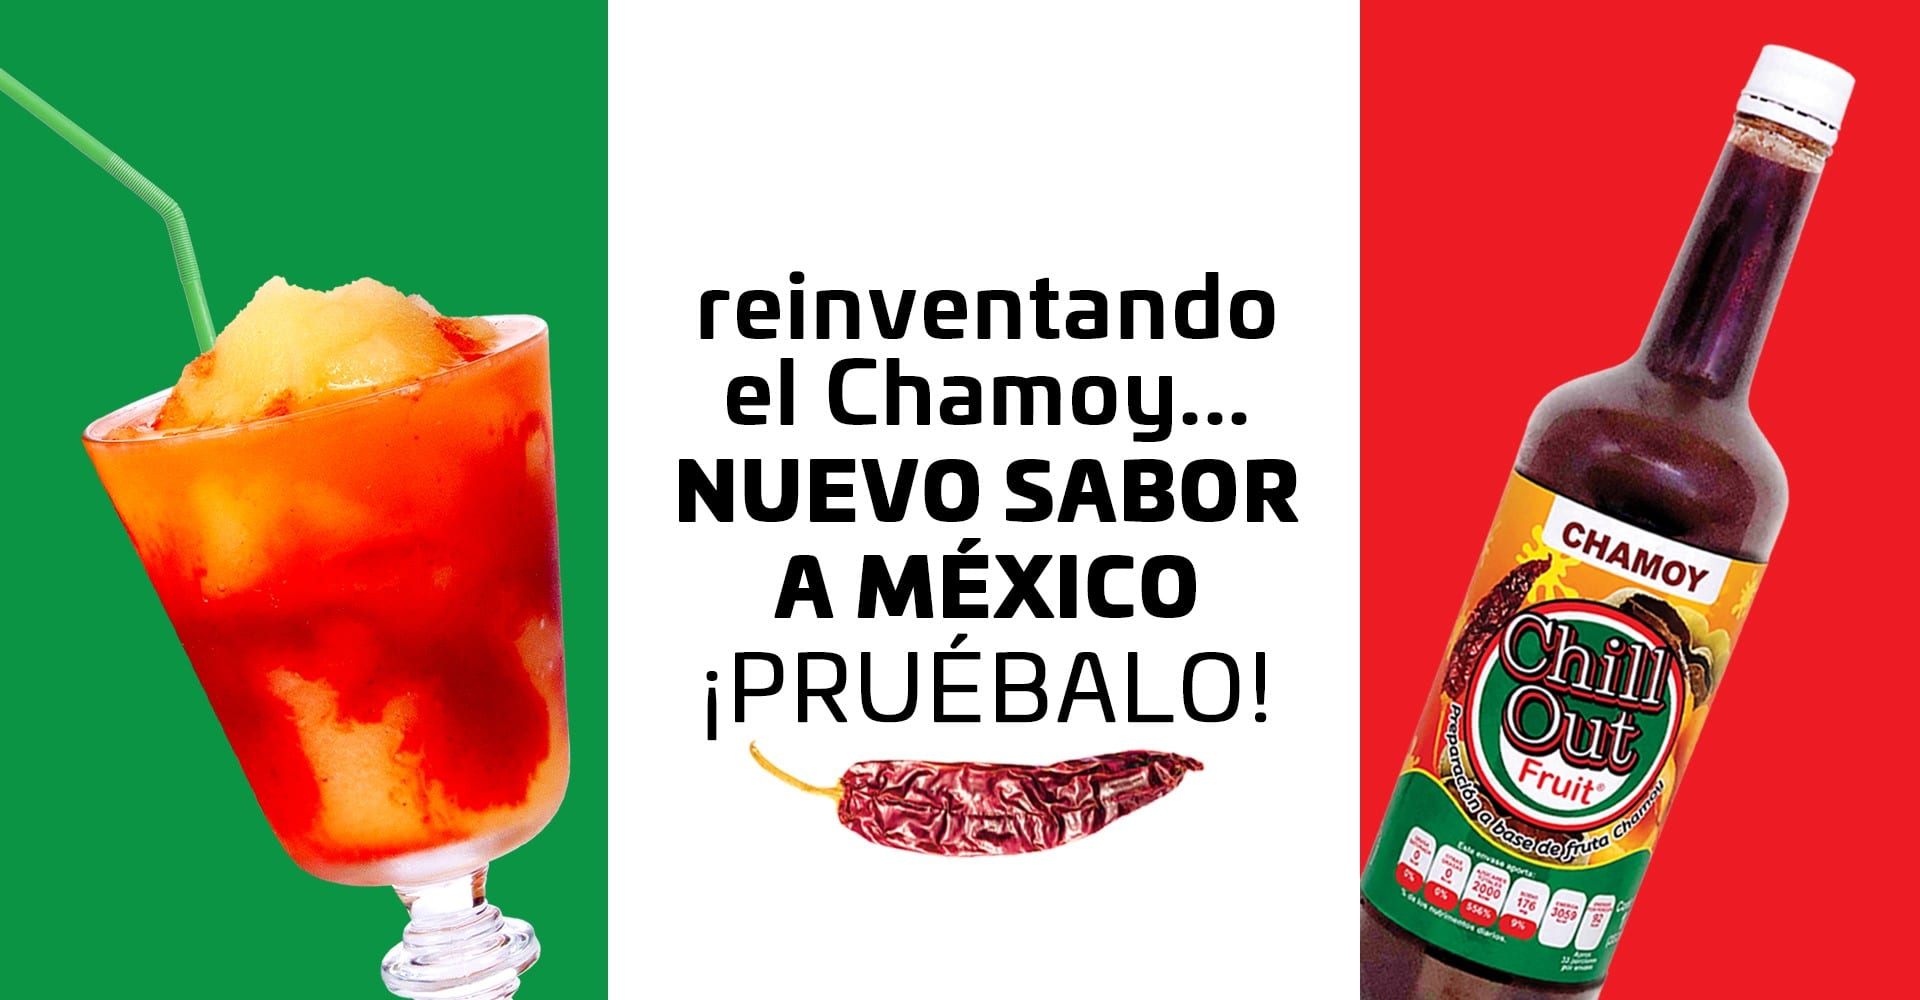 ChillOut Fruit Chamoy